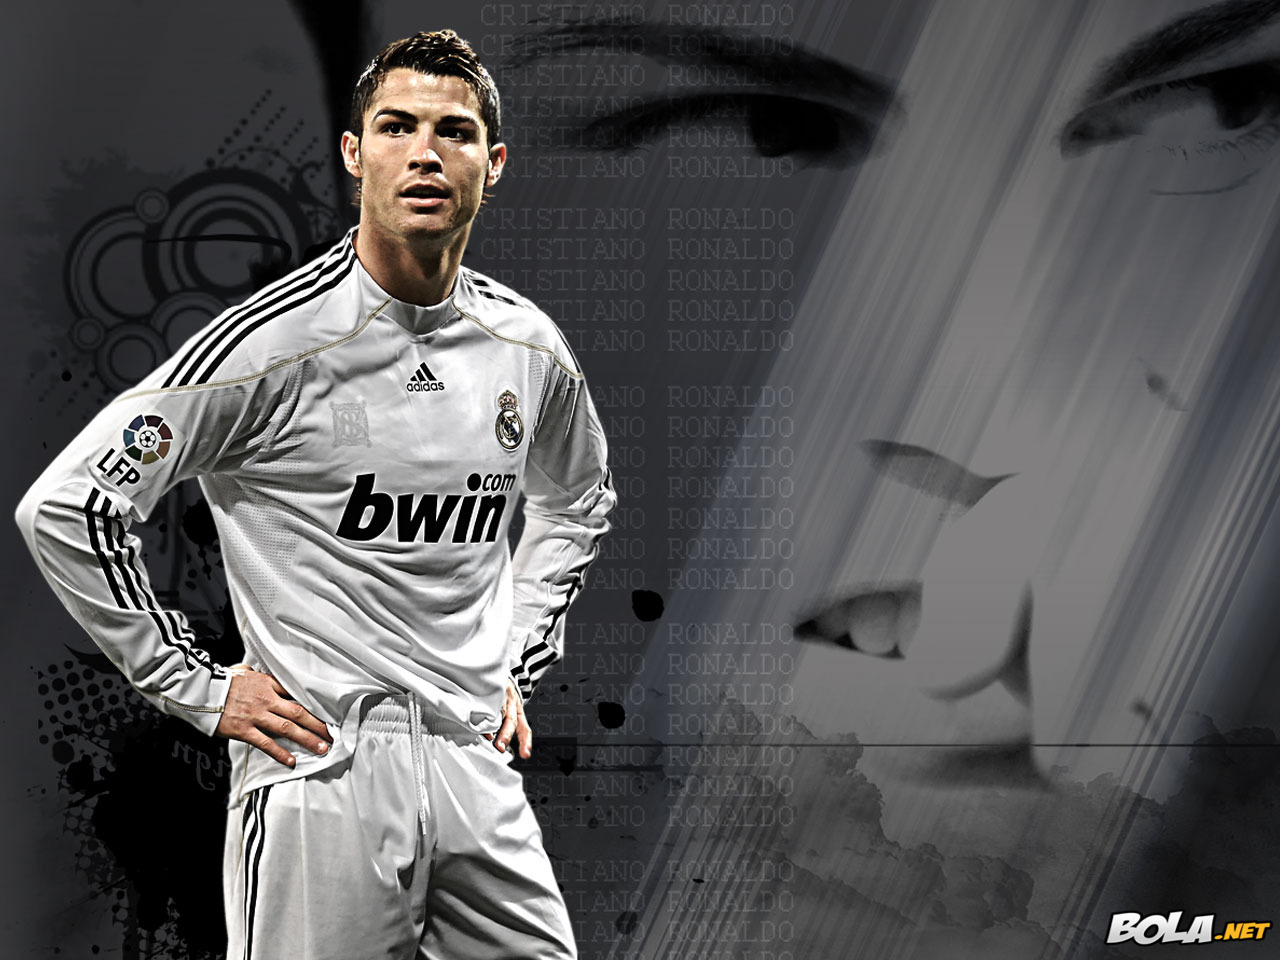 cristiano ronaldo hd wallpapers wallpaper 1280x960